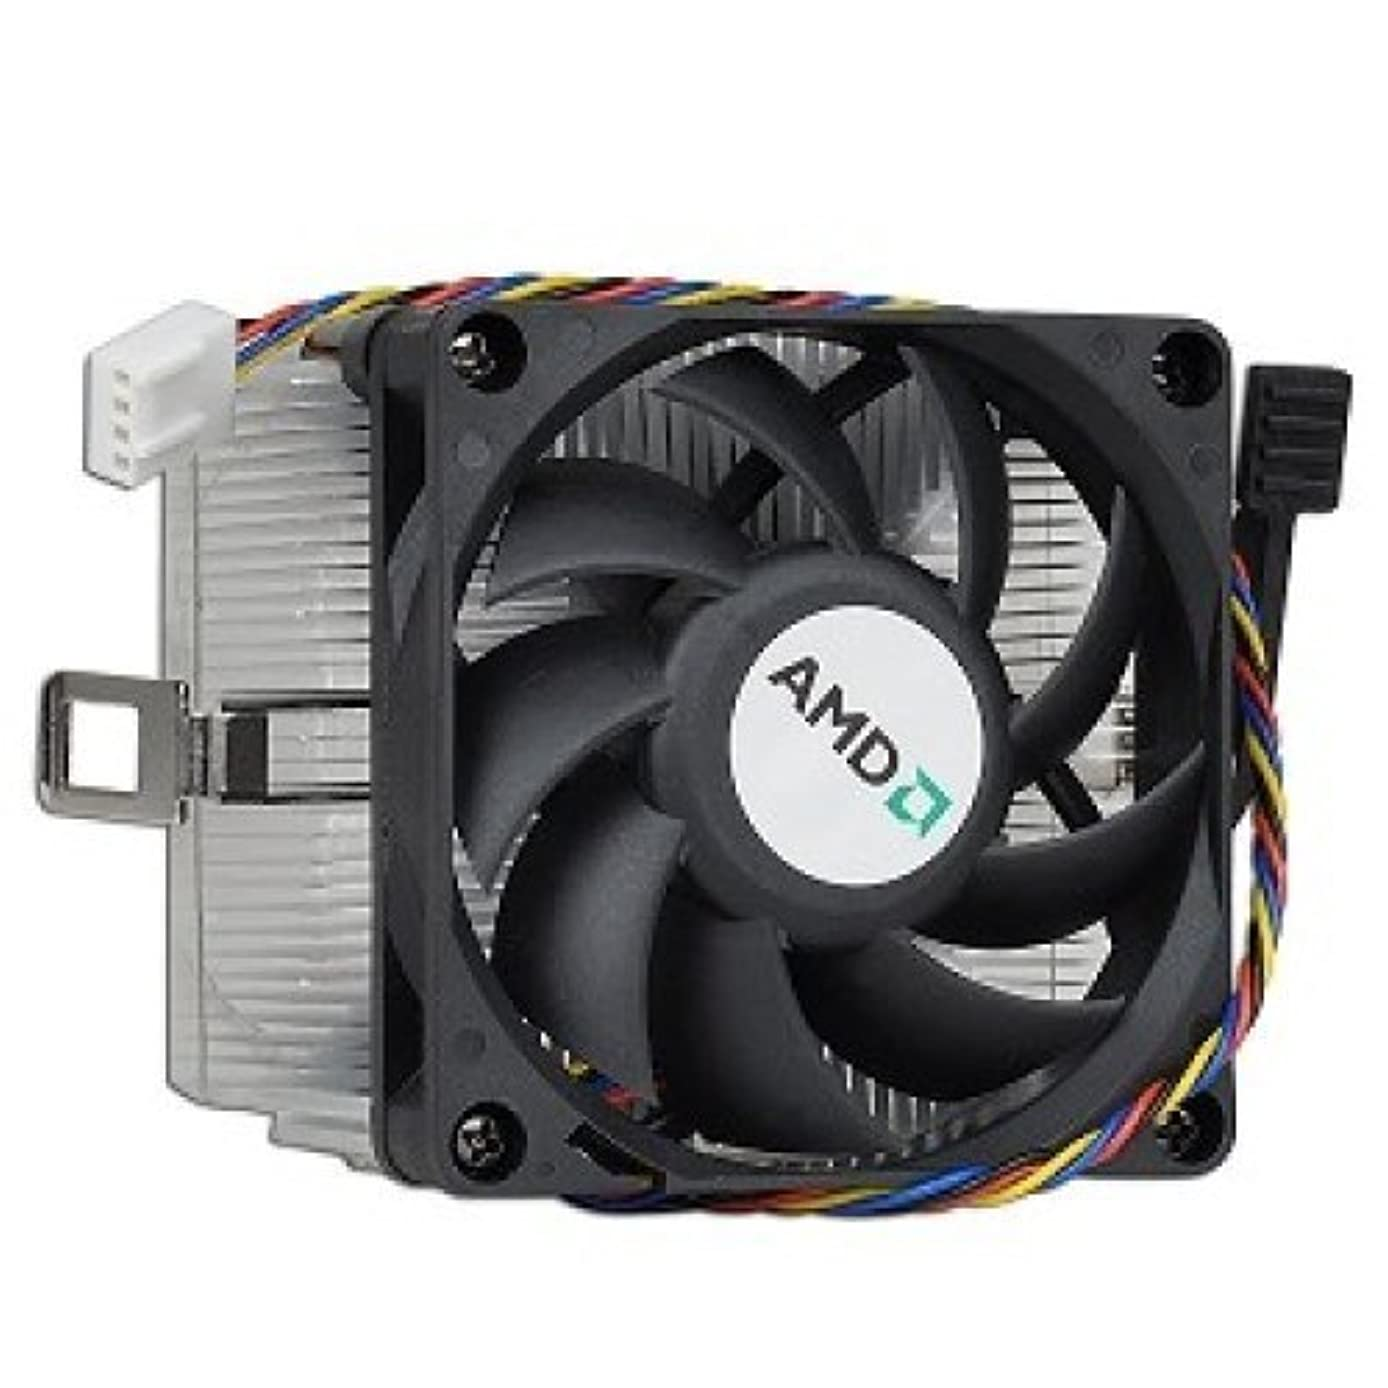 AMD Socket AM3 / AM2 / 1207/940 / 939/754 4-Pin Connector CPU Cooler with Aluminum Heatsink & 2.75-Inch Fan with Pre-Applied Thermal Paste for Desktop PC Computer (TS9)